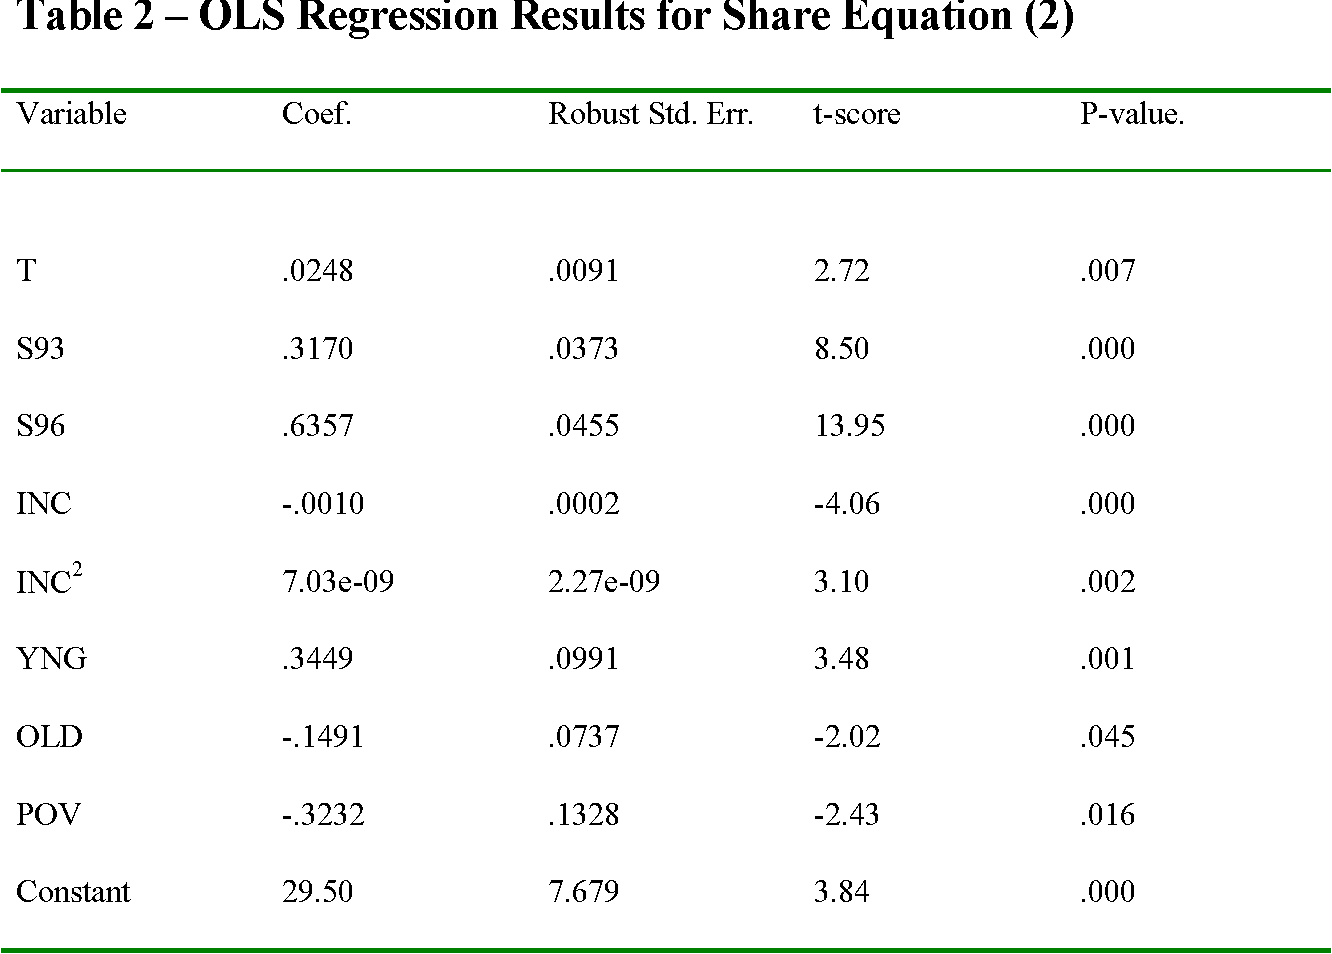 Table 2 – OLS Regression Results for Share Equation (2)